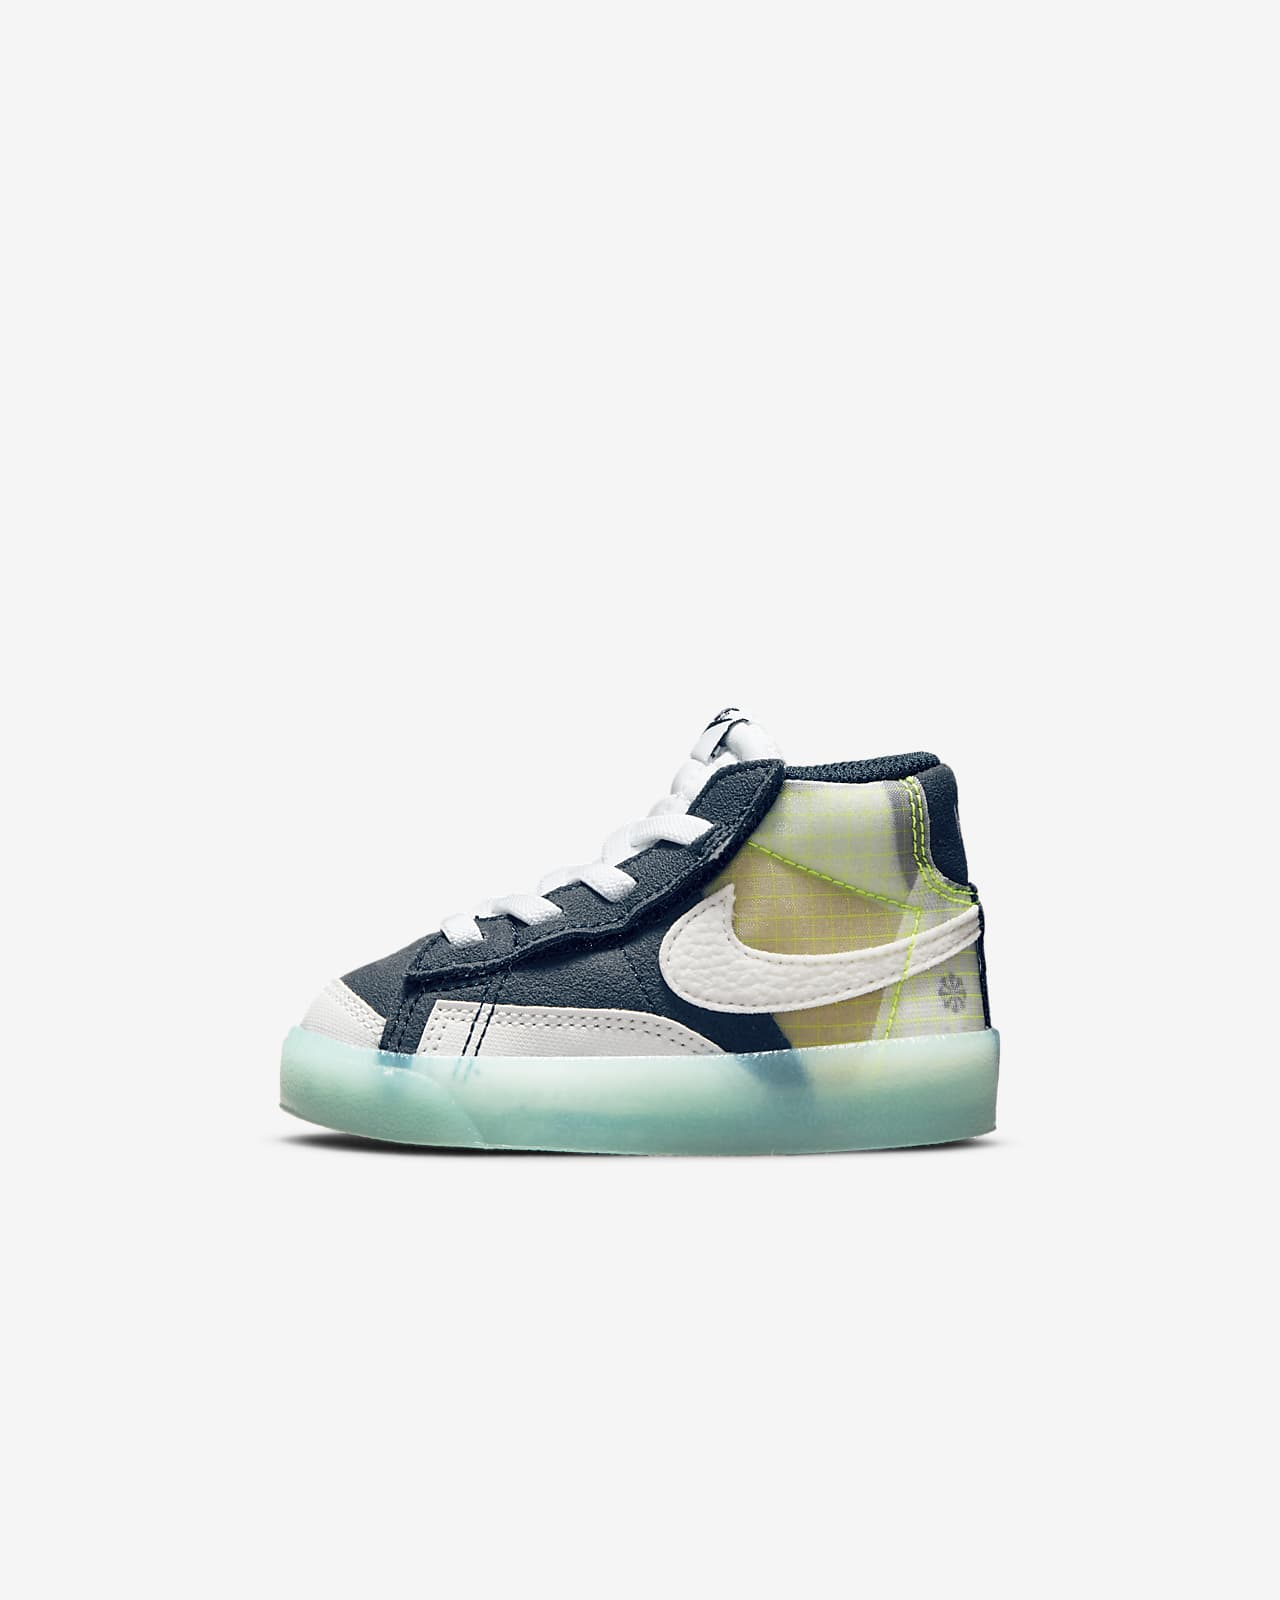 Nike Blazer Mid '77 Baby/Toddler Shoes